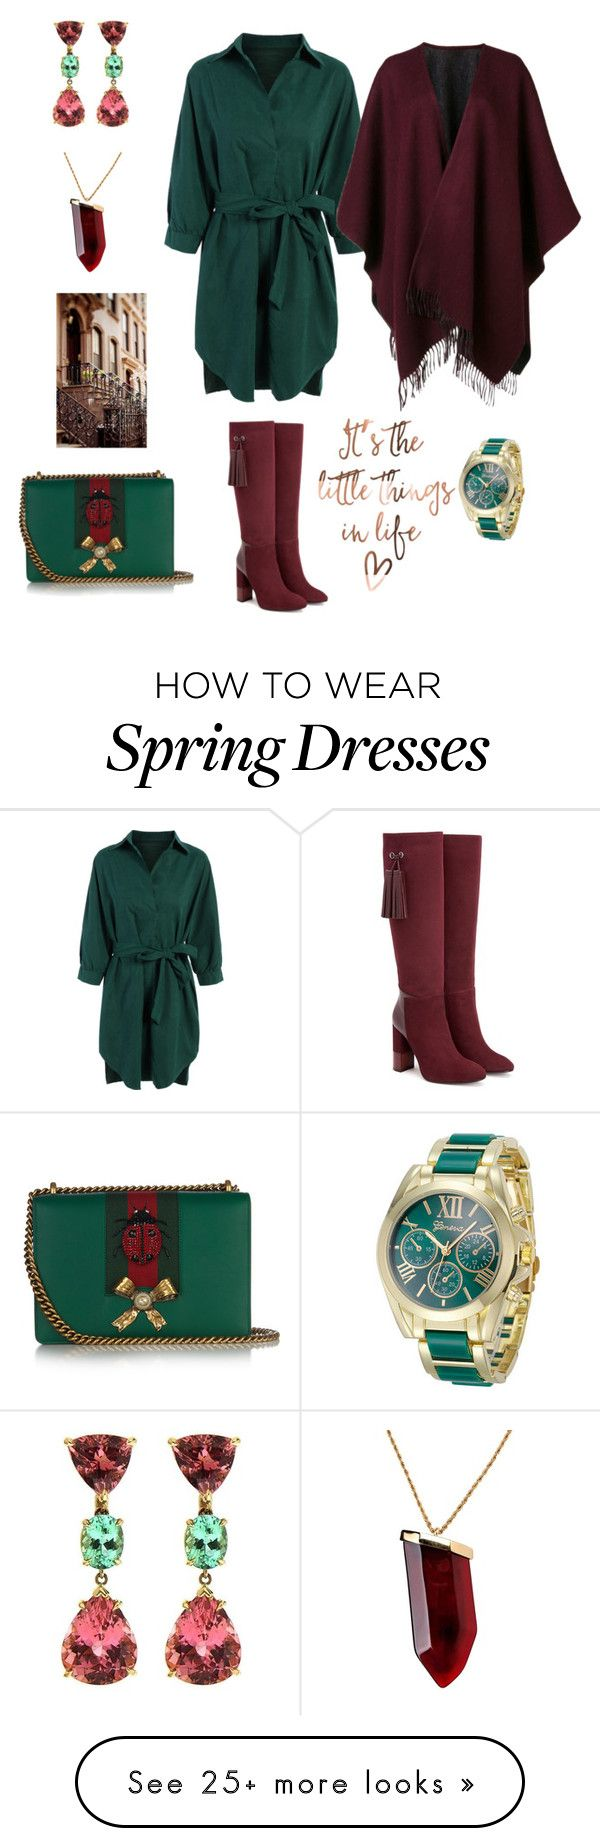 """It's the Little Things"" by kikikoji on Polyvore featuring Aquatalia by Marvin K., rag & bone, Gucci, Kenneth Jay Lane and Valentin Magro"